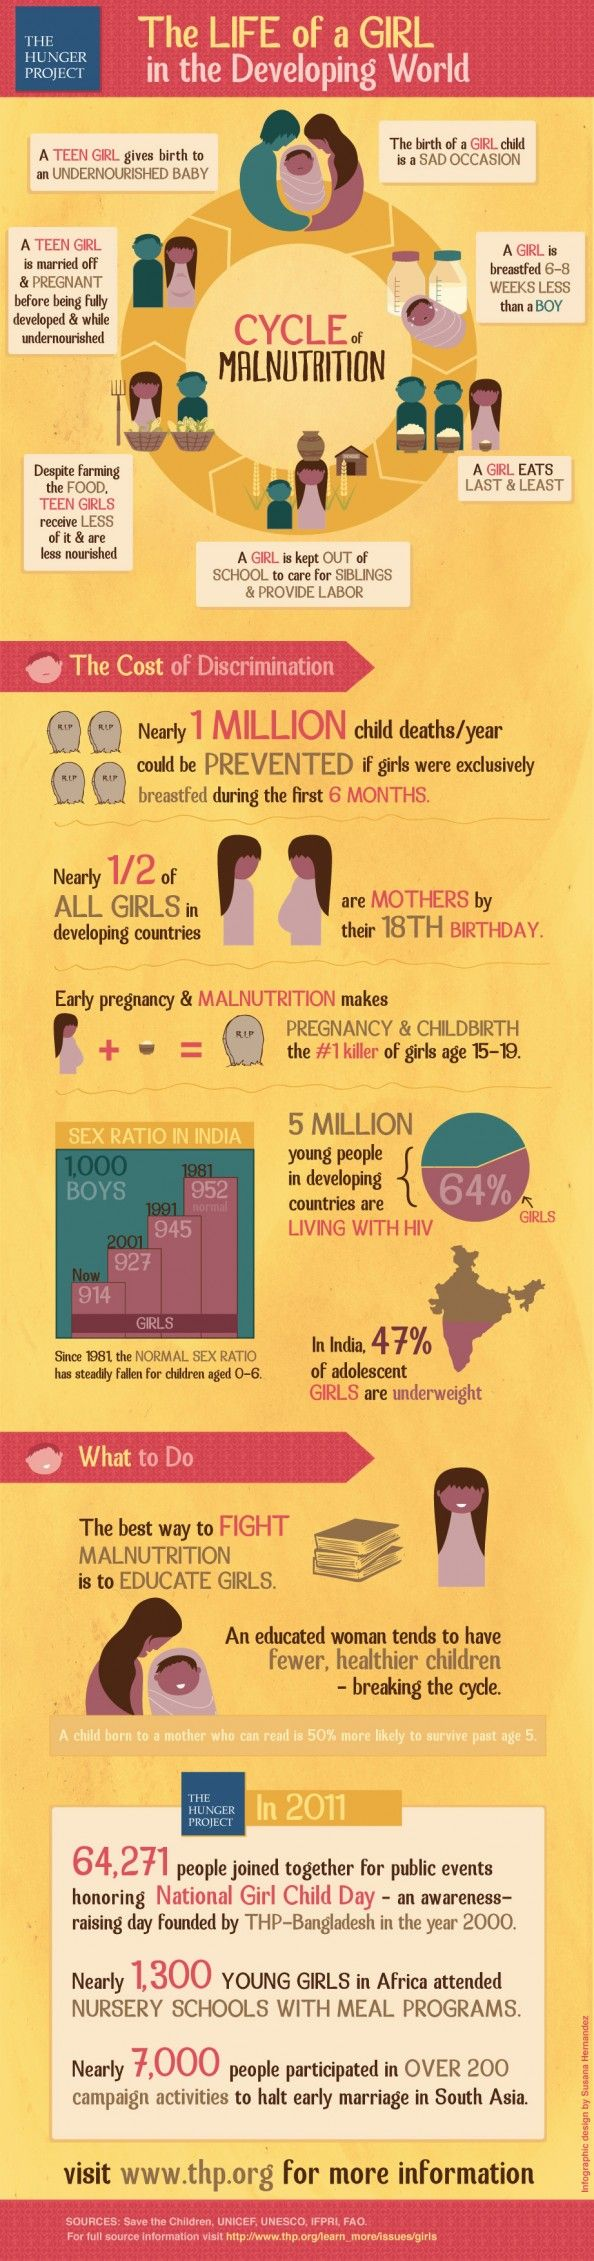 The Life of a Girl in the Developing World Infographic